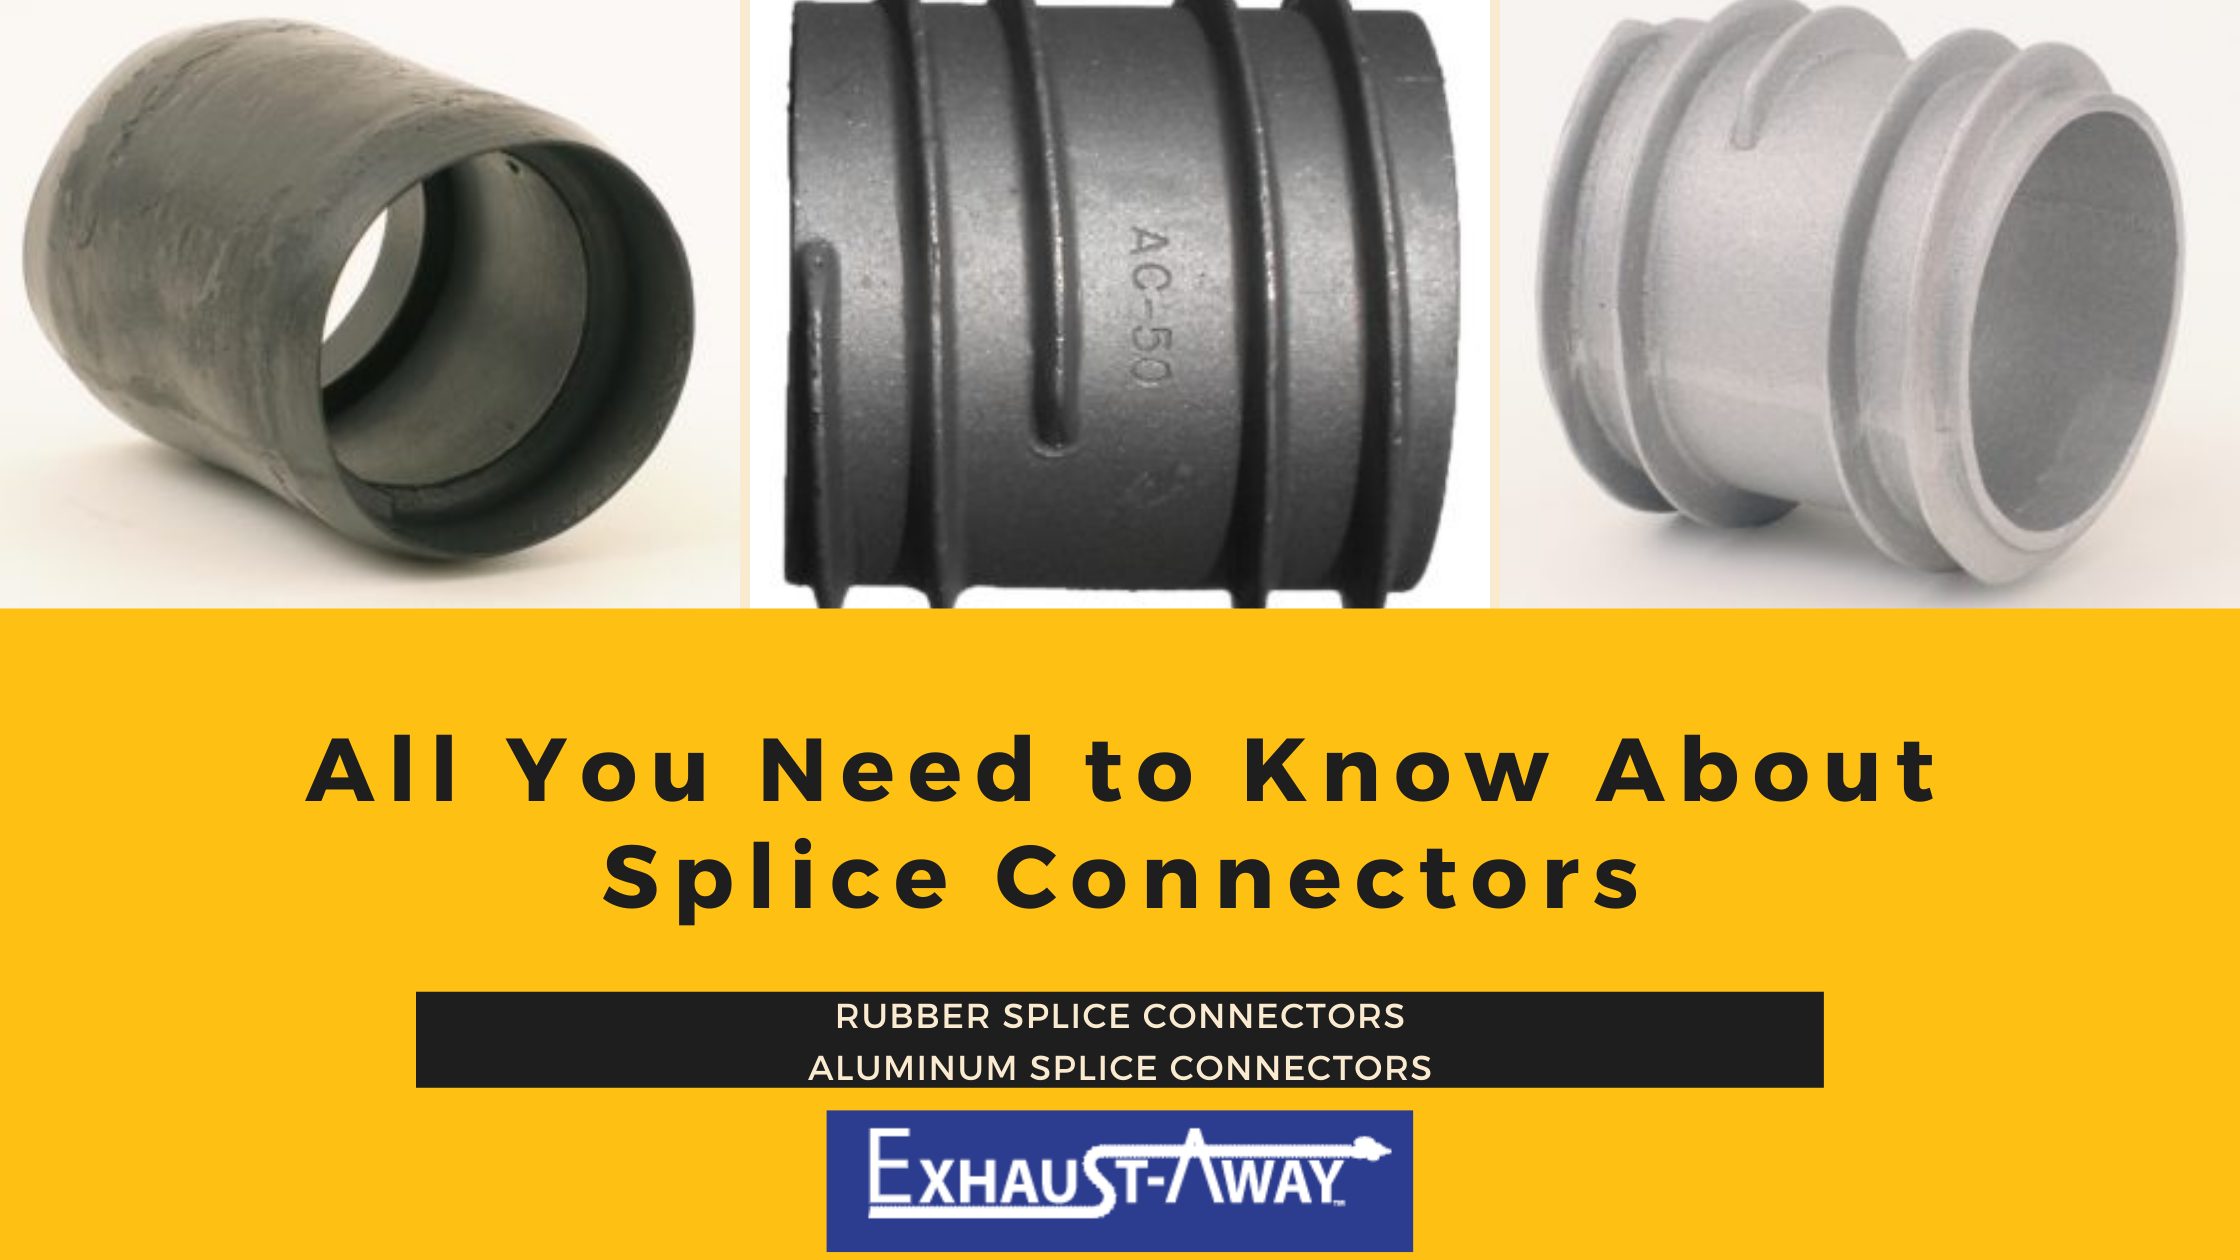 All You Need to Know About Splice Connectors